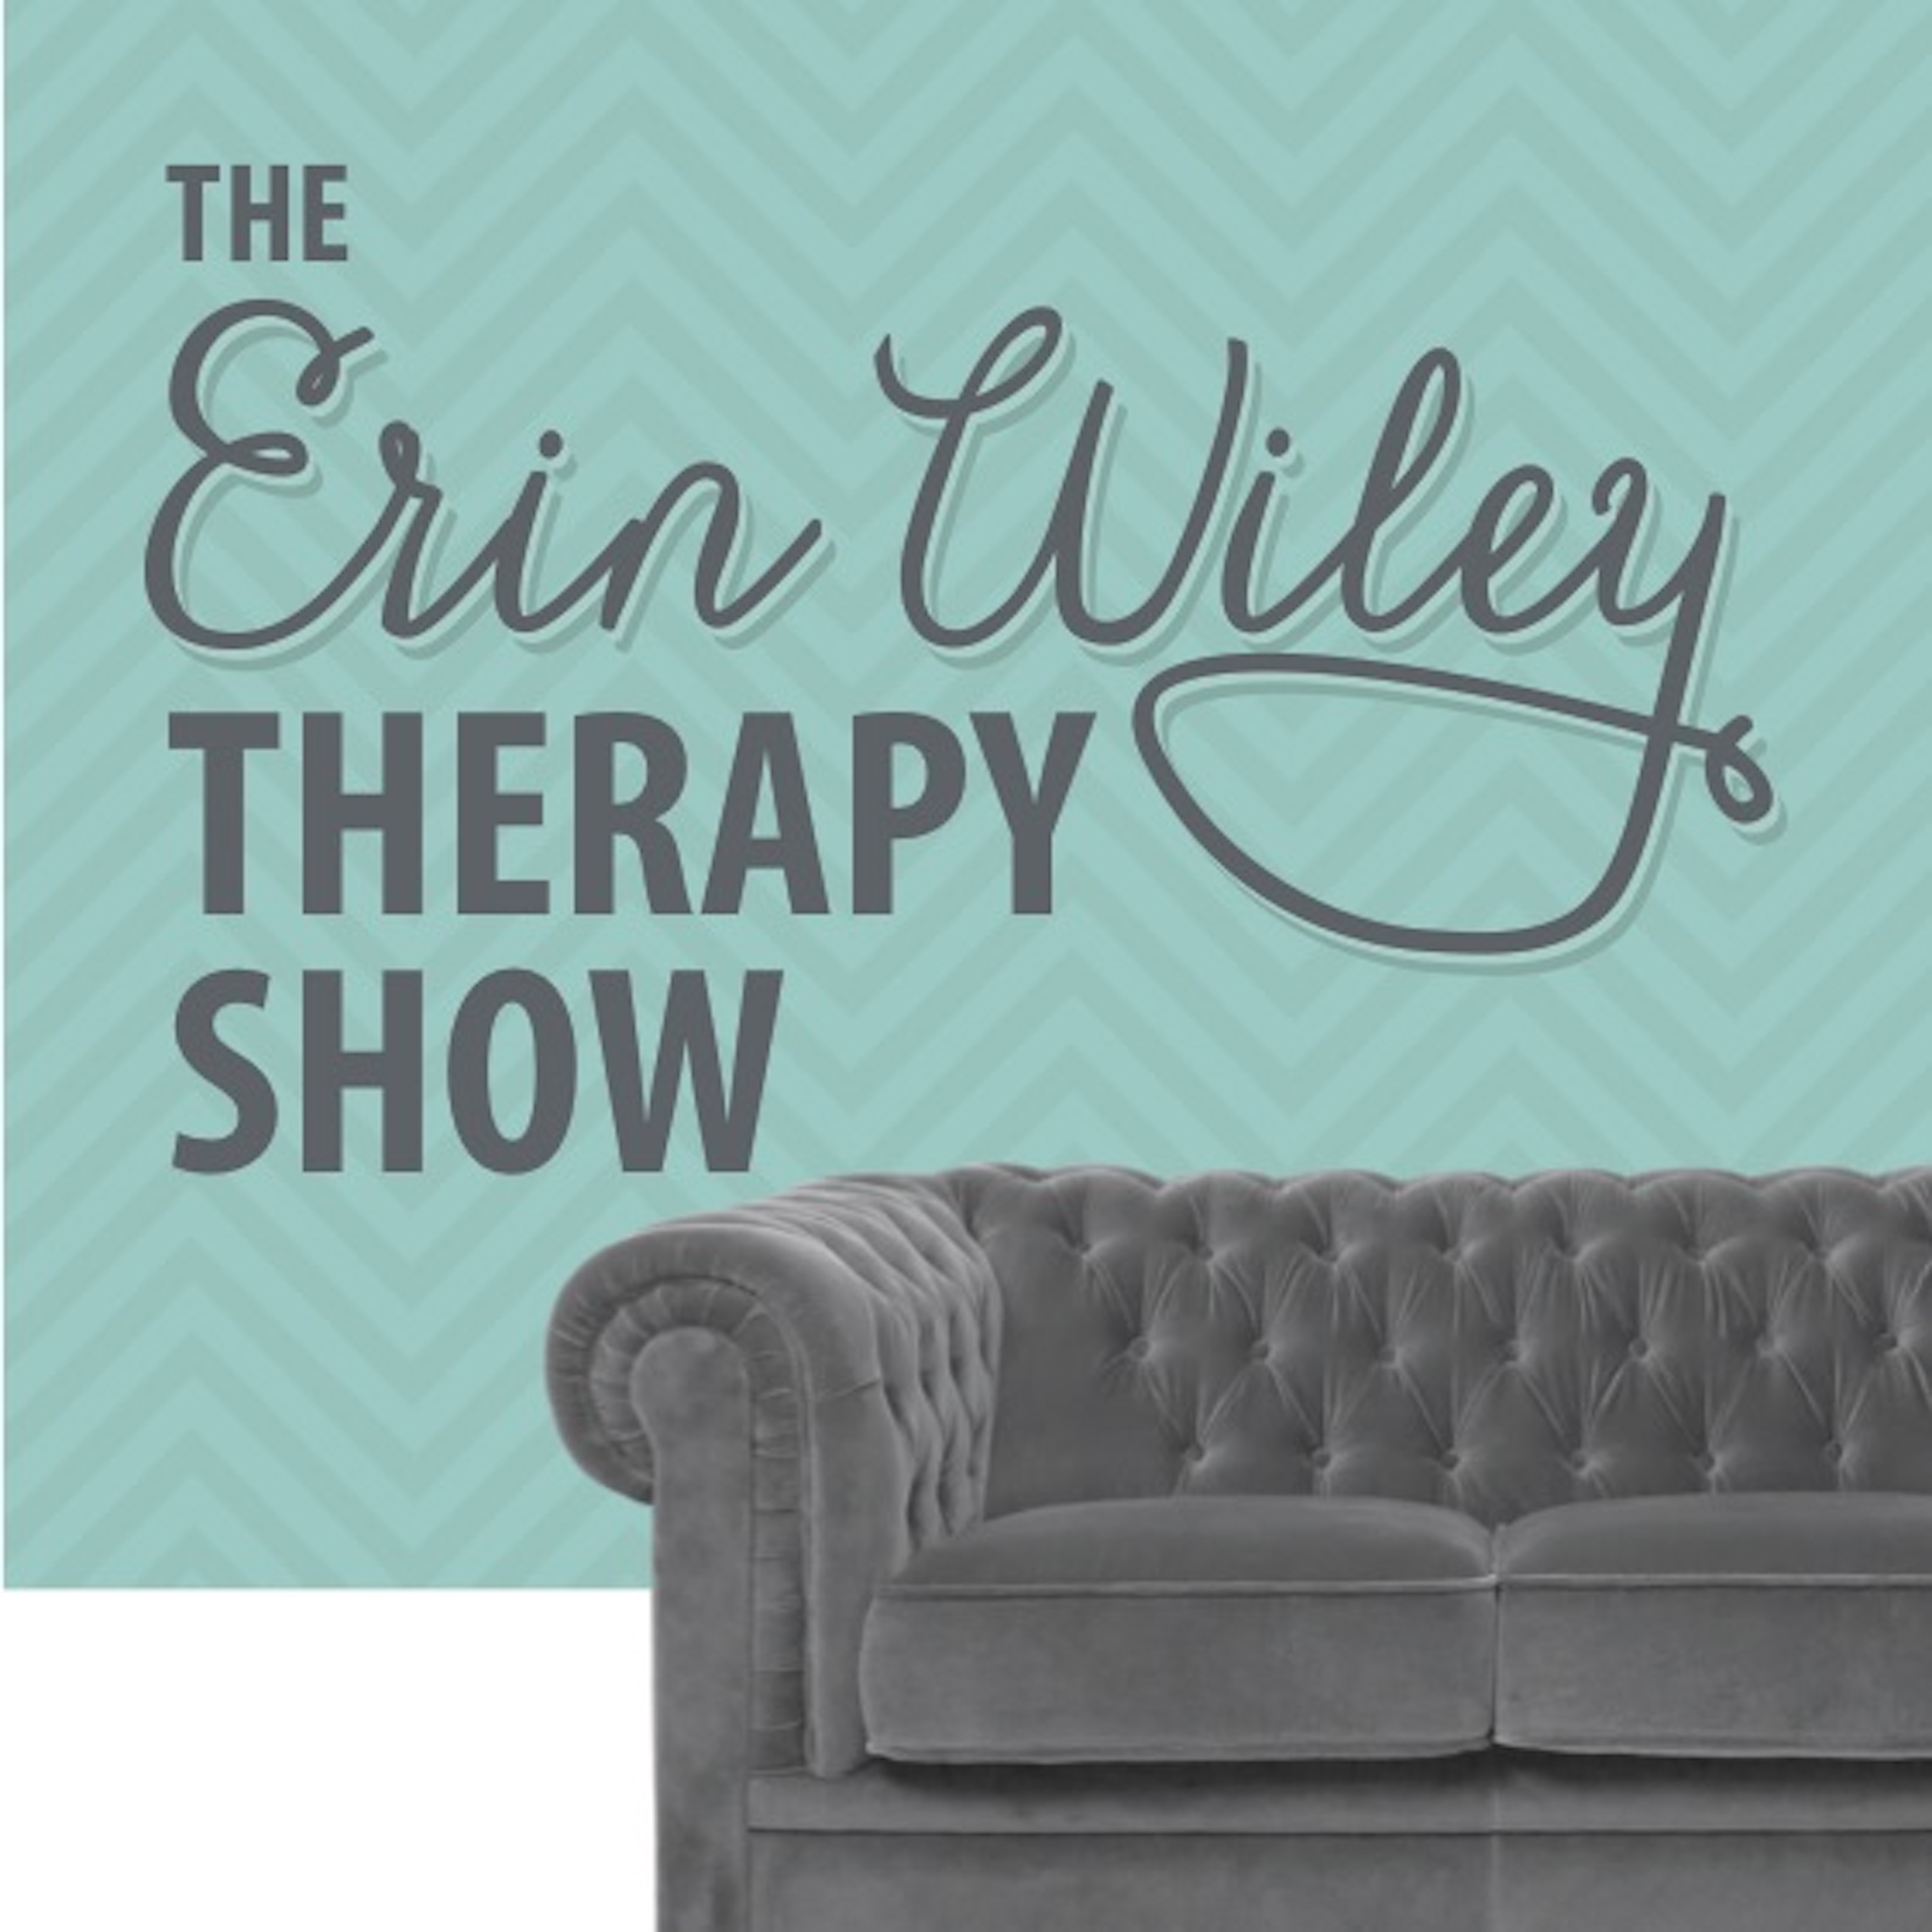 The Erin Wiley Therapy Show show art